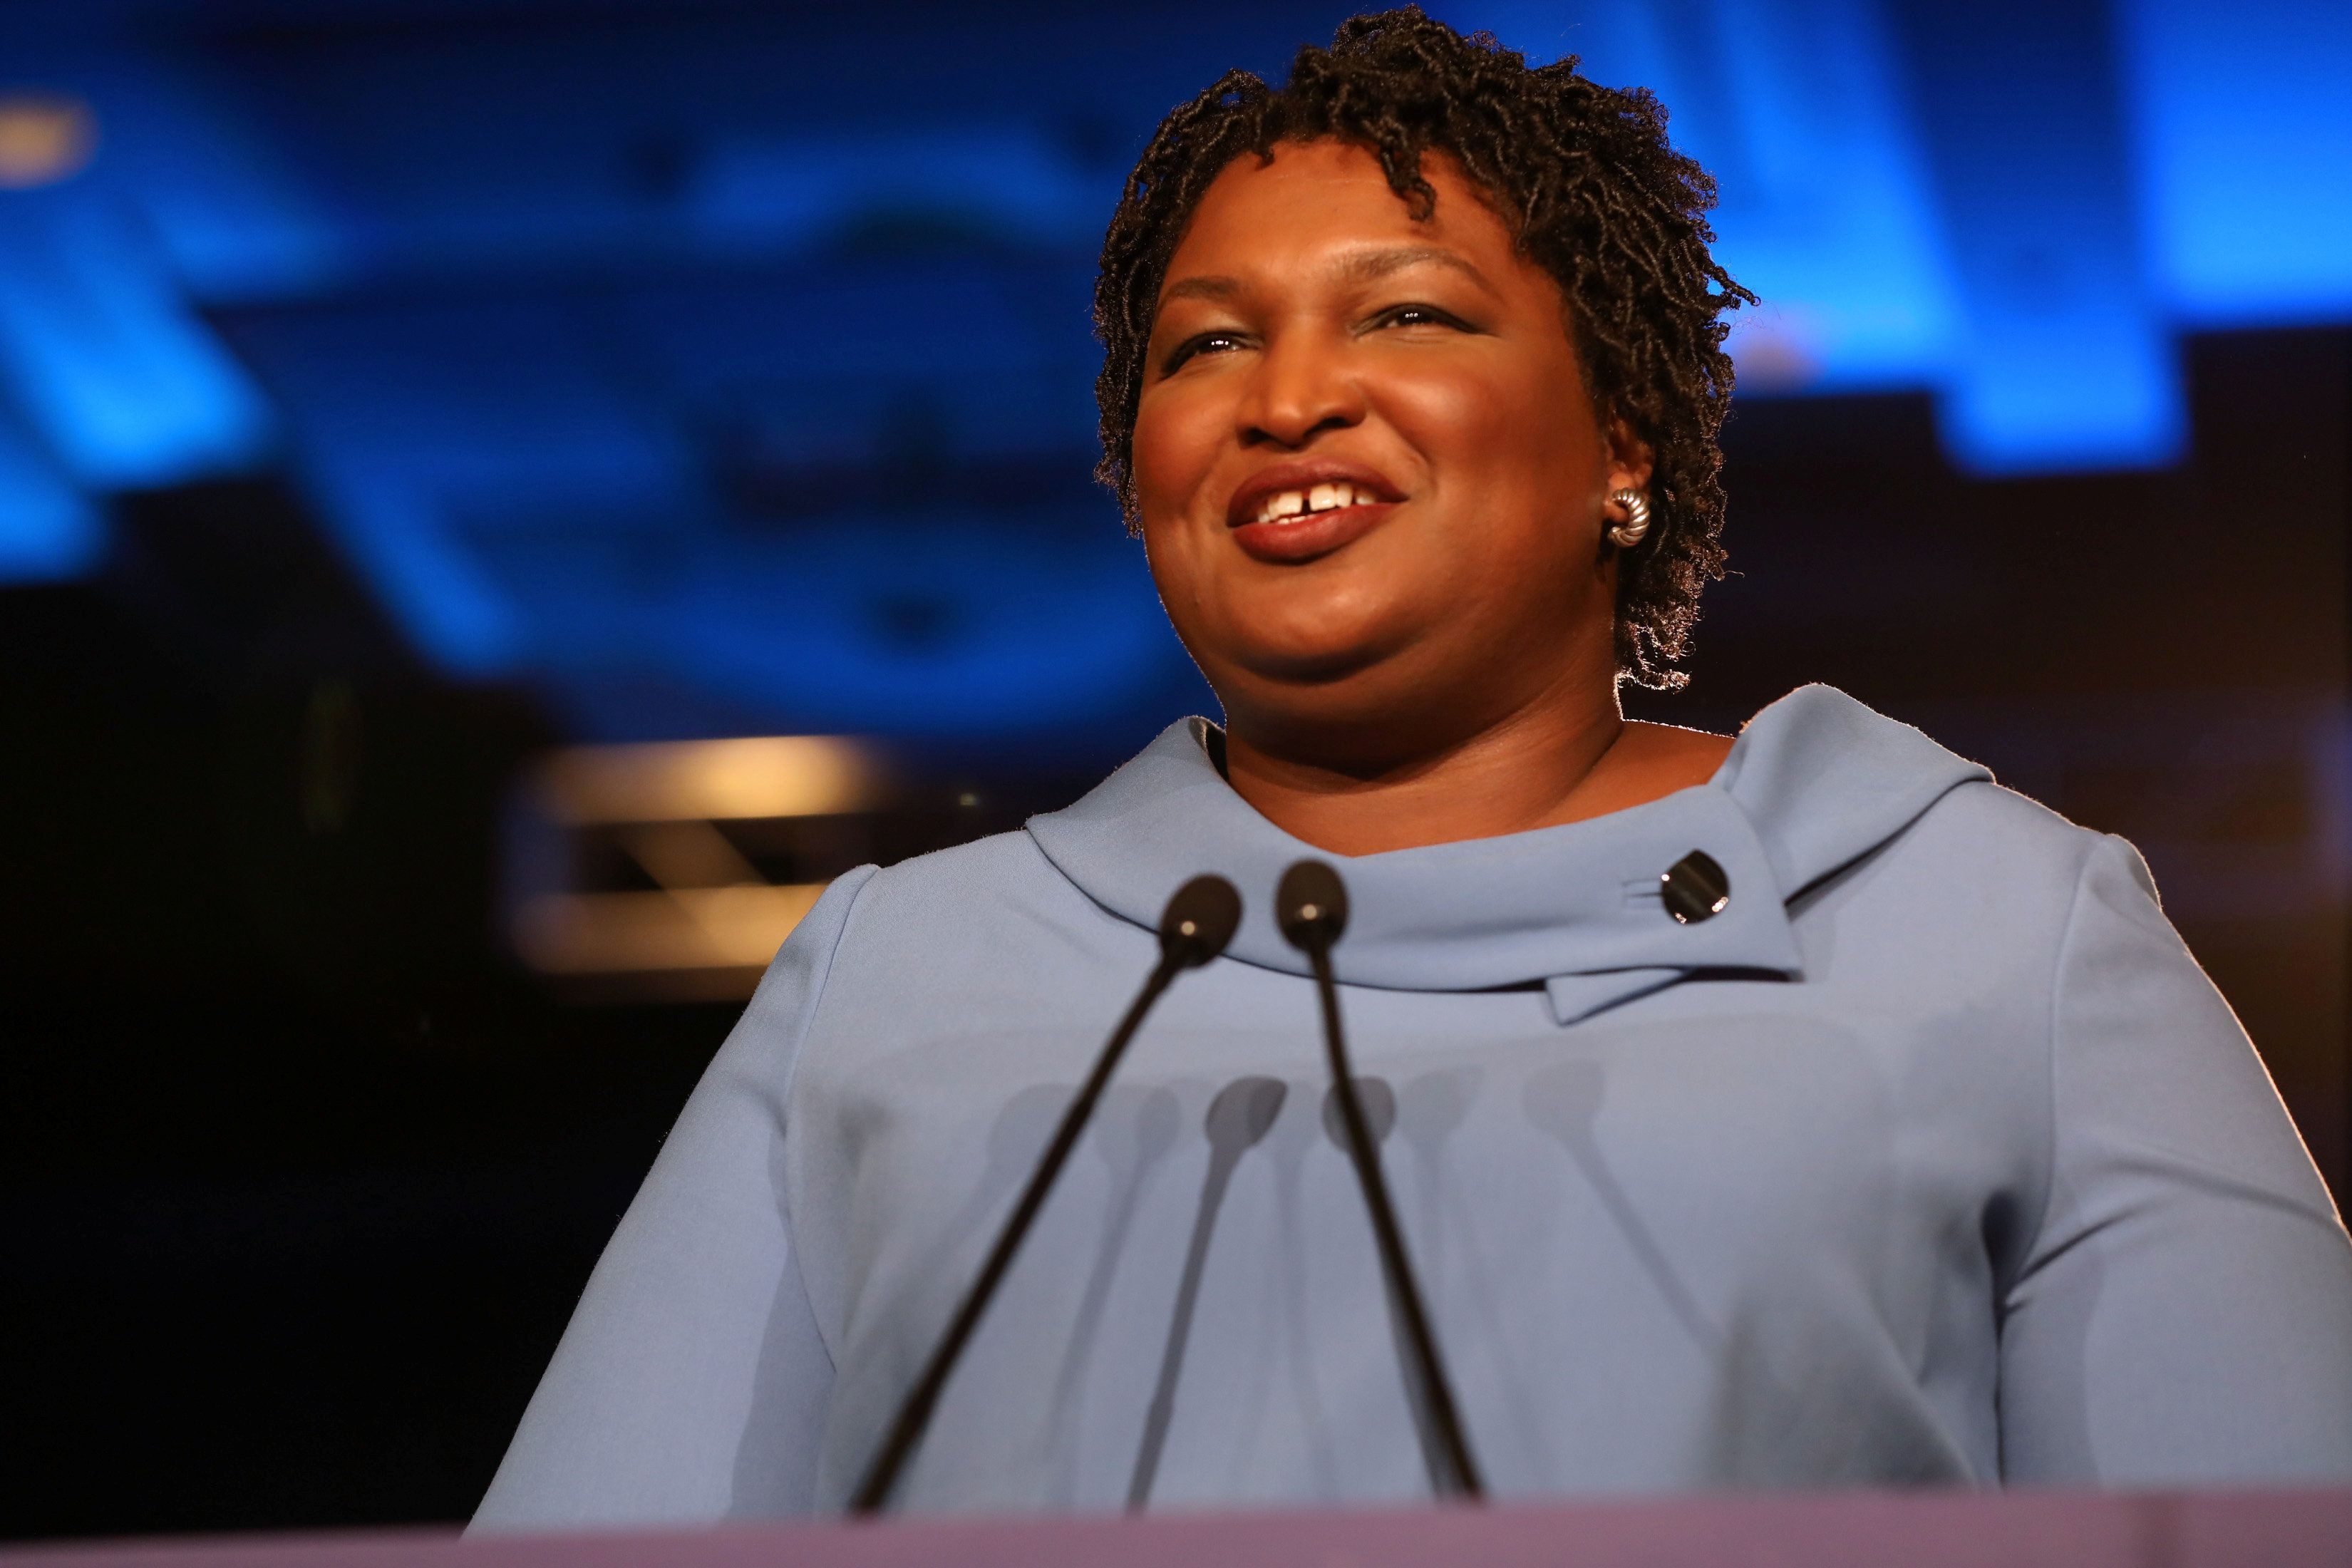 Stacey Abrams speaks to the crowd of supporters announcing they will wait till the morning for results of the mid-terms election at the Hyatt Regency in Atlanta, Georgia, U.S. November 7, 2018. REUTERS/Lawrence Bryant